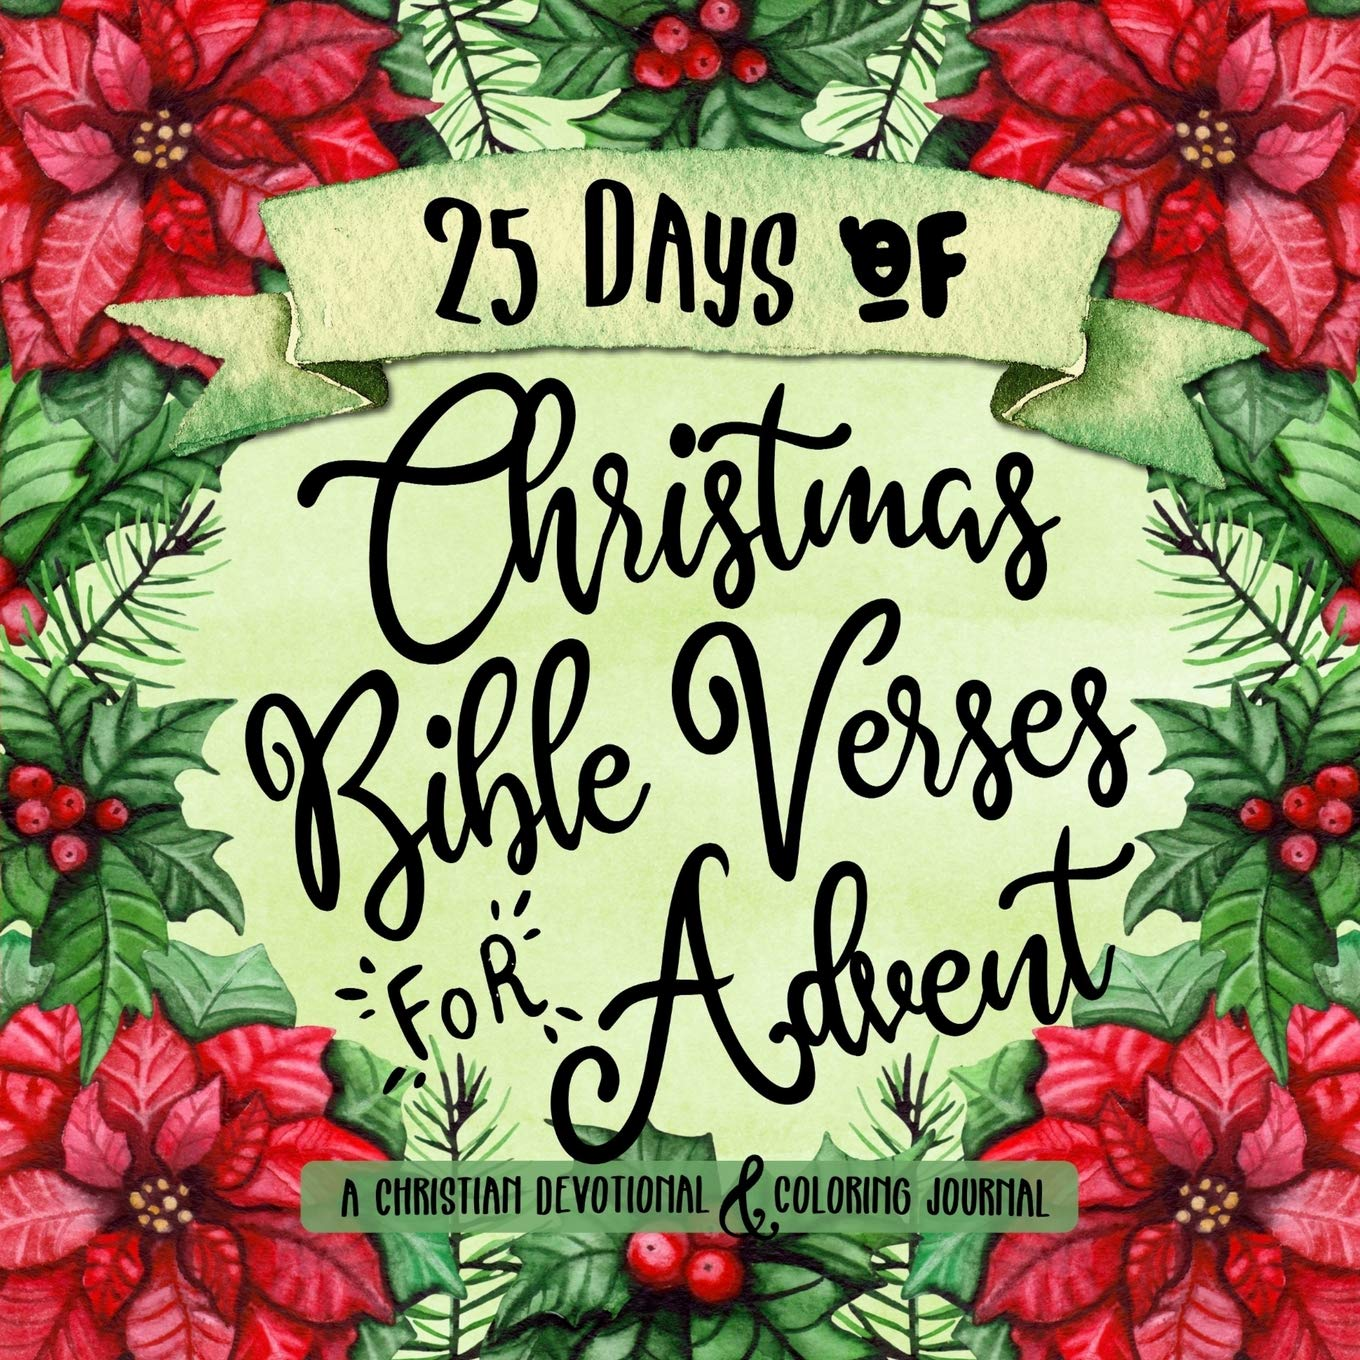 Is Christmas In The Bible.25 Days Of Christmas Bible Verses For Advent A Christian